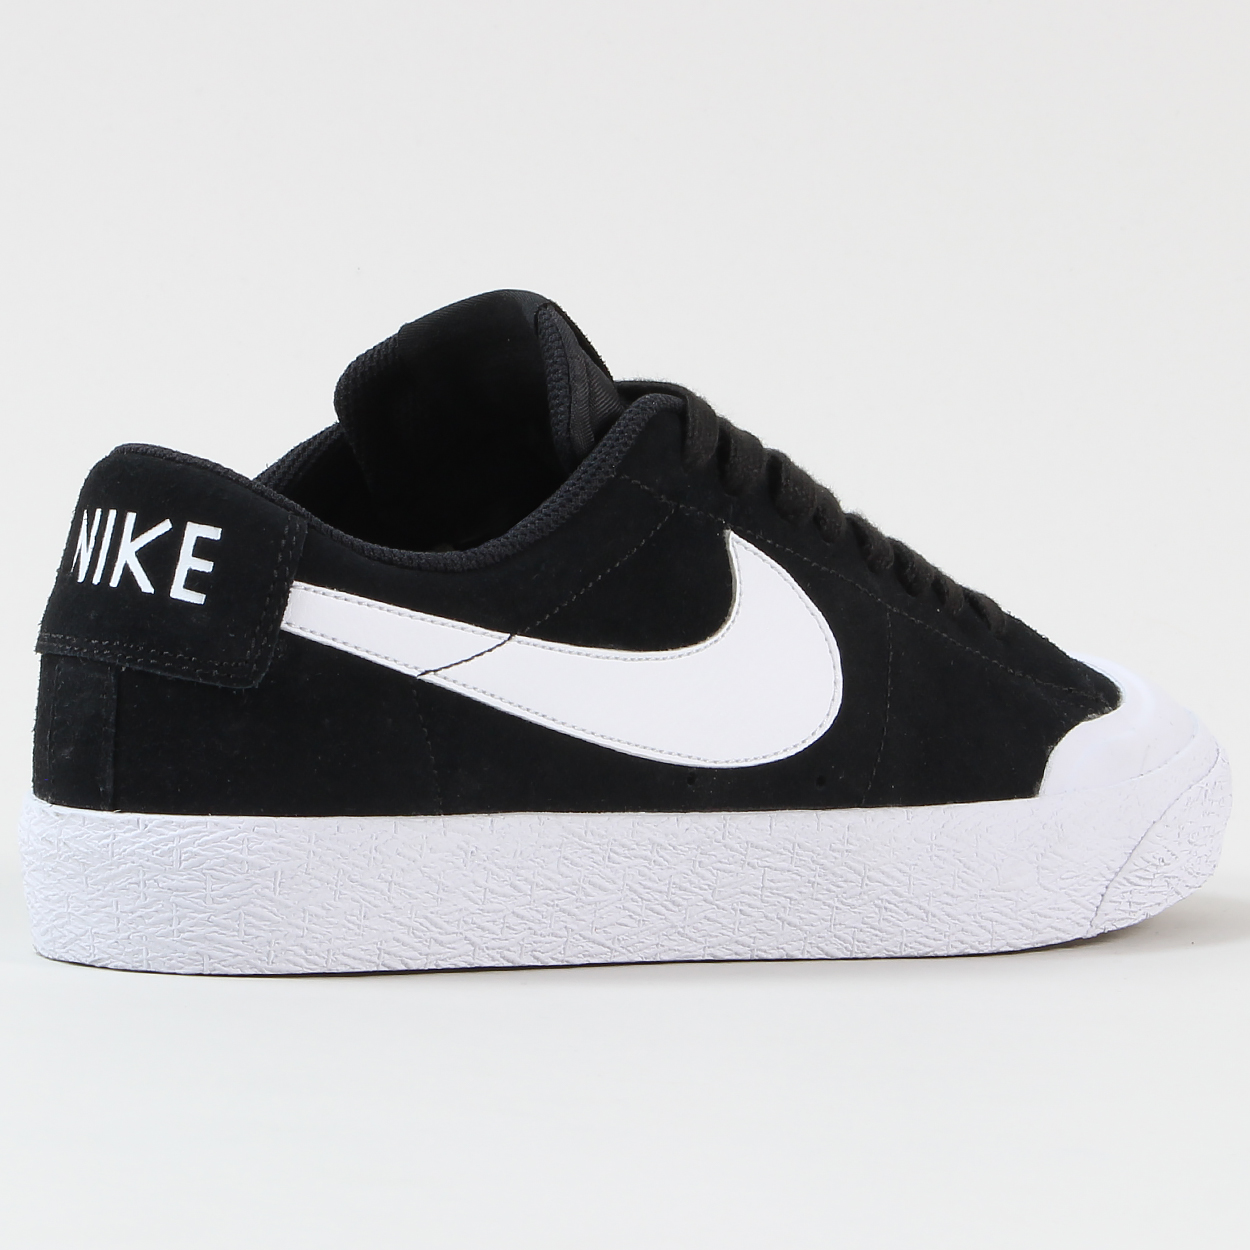 5189b62a91 Nike SB Skateboarding Mens Blazer Low XT Tough Shoes Black White £52.50